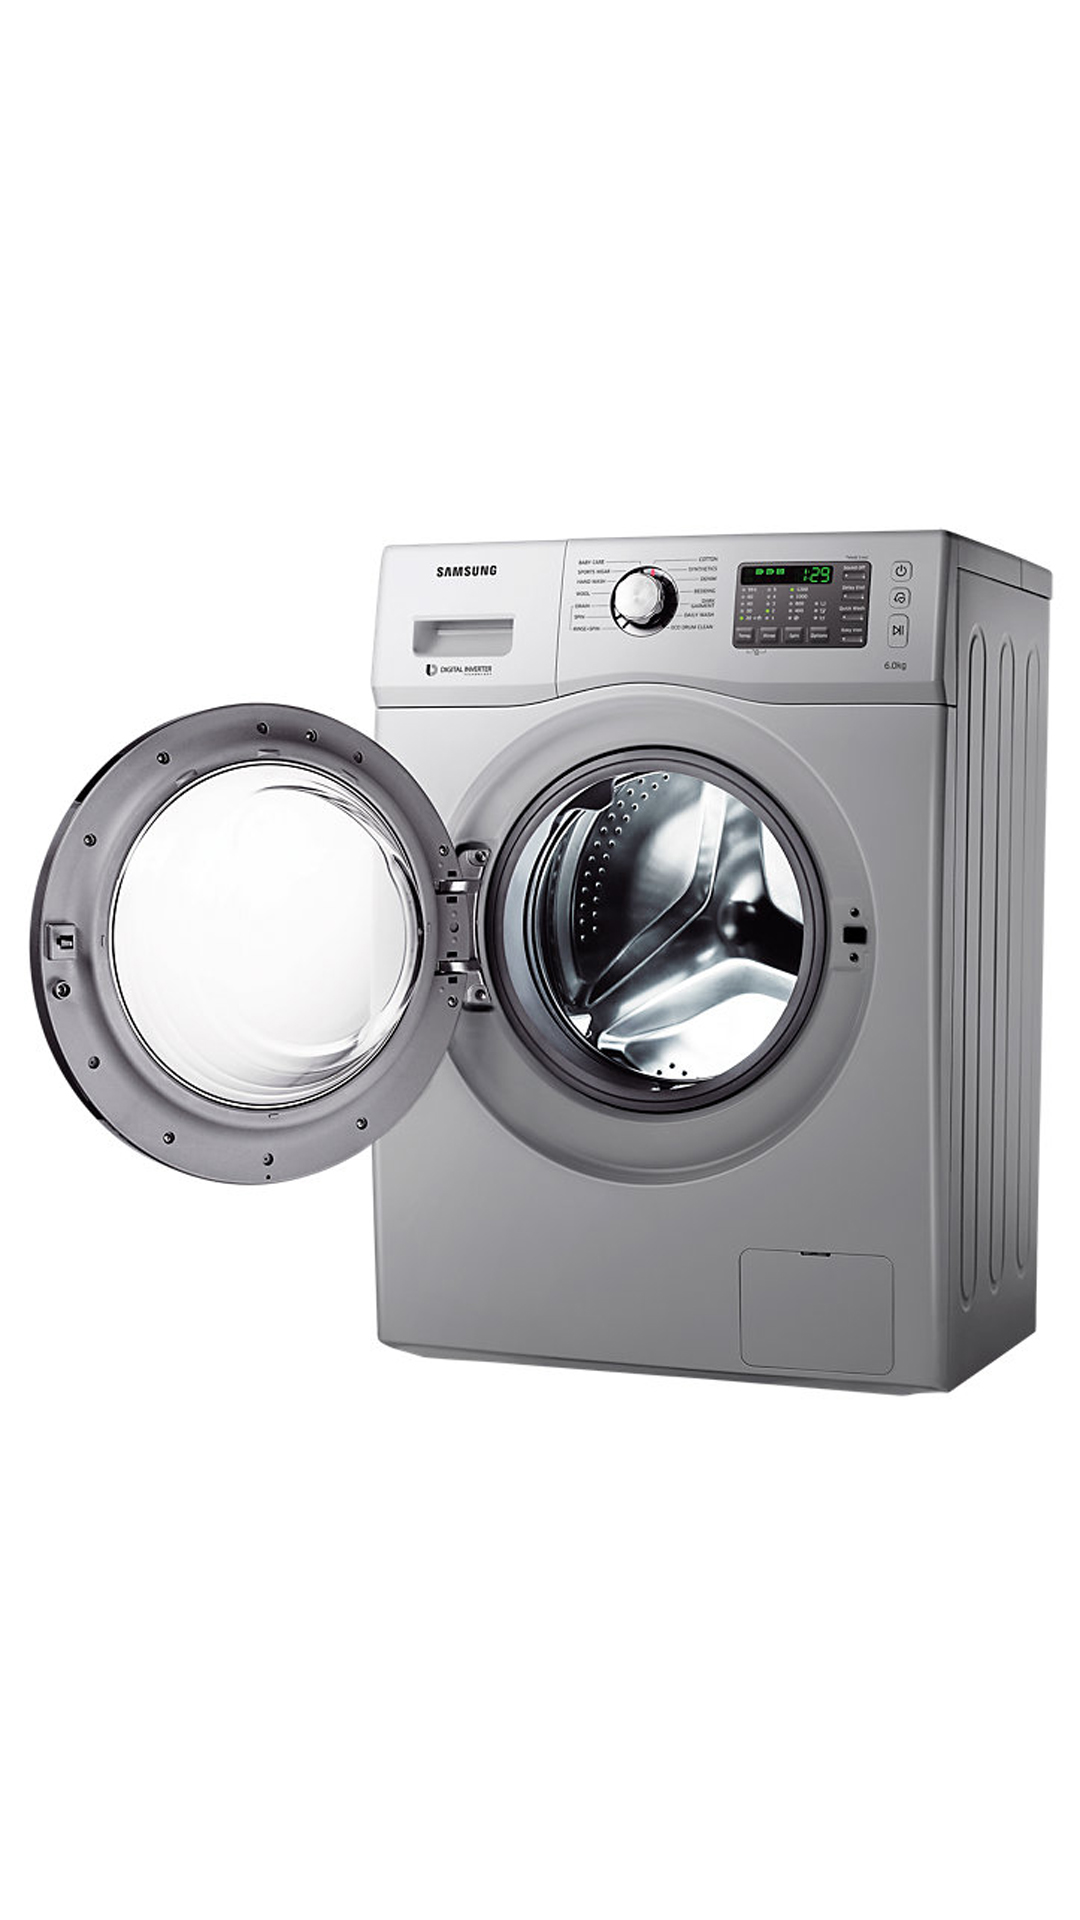 Samsung WF652U2BHSD/TL Fully-Automatic Front-Loading Washing Machine (6.5 Kgs, Silver)